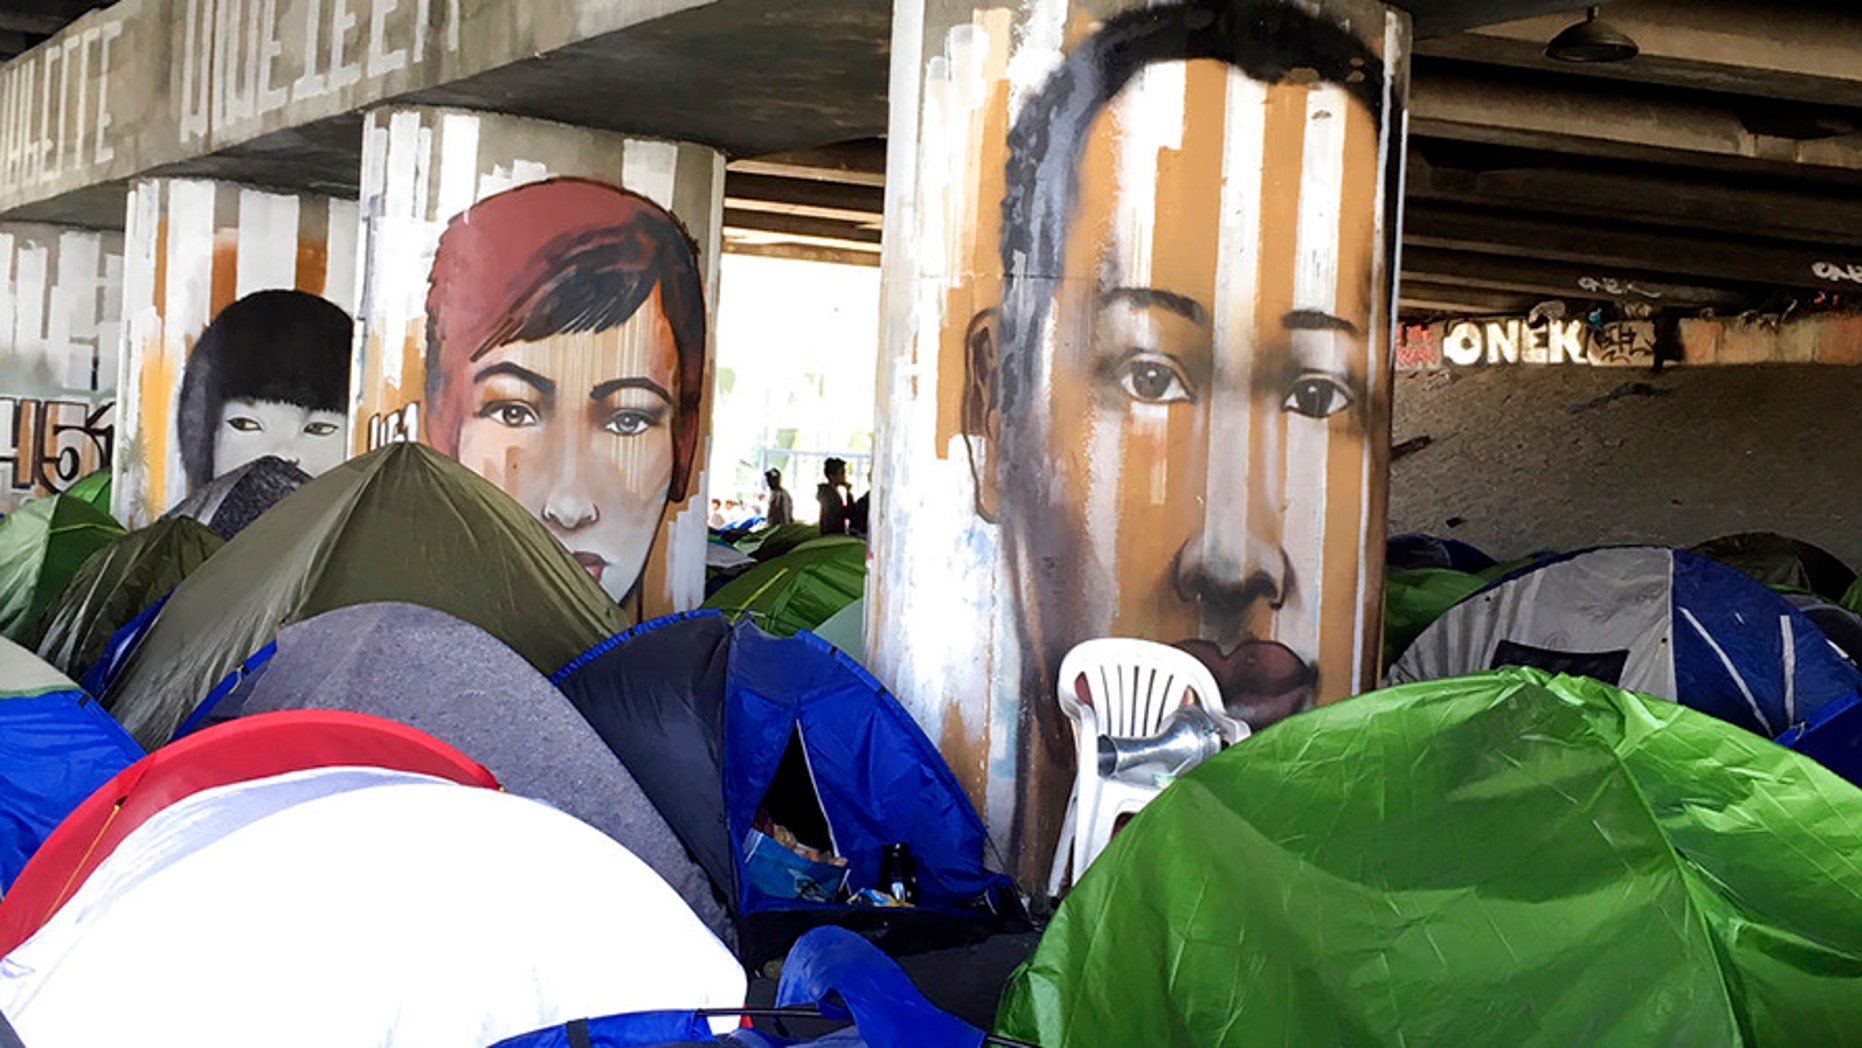 The French government is looking to evacuate two migrant camps near Paris